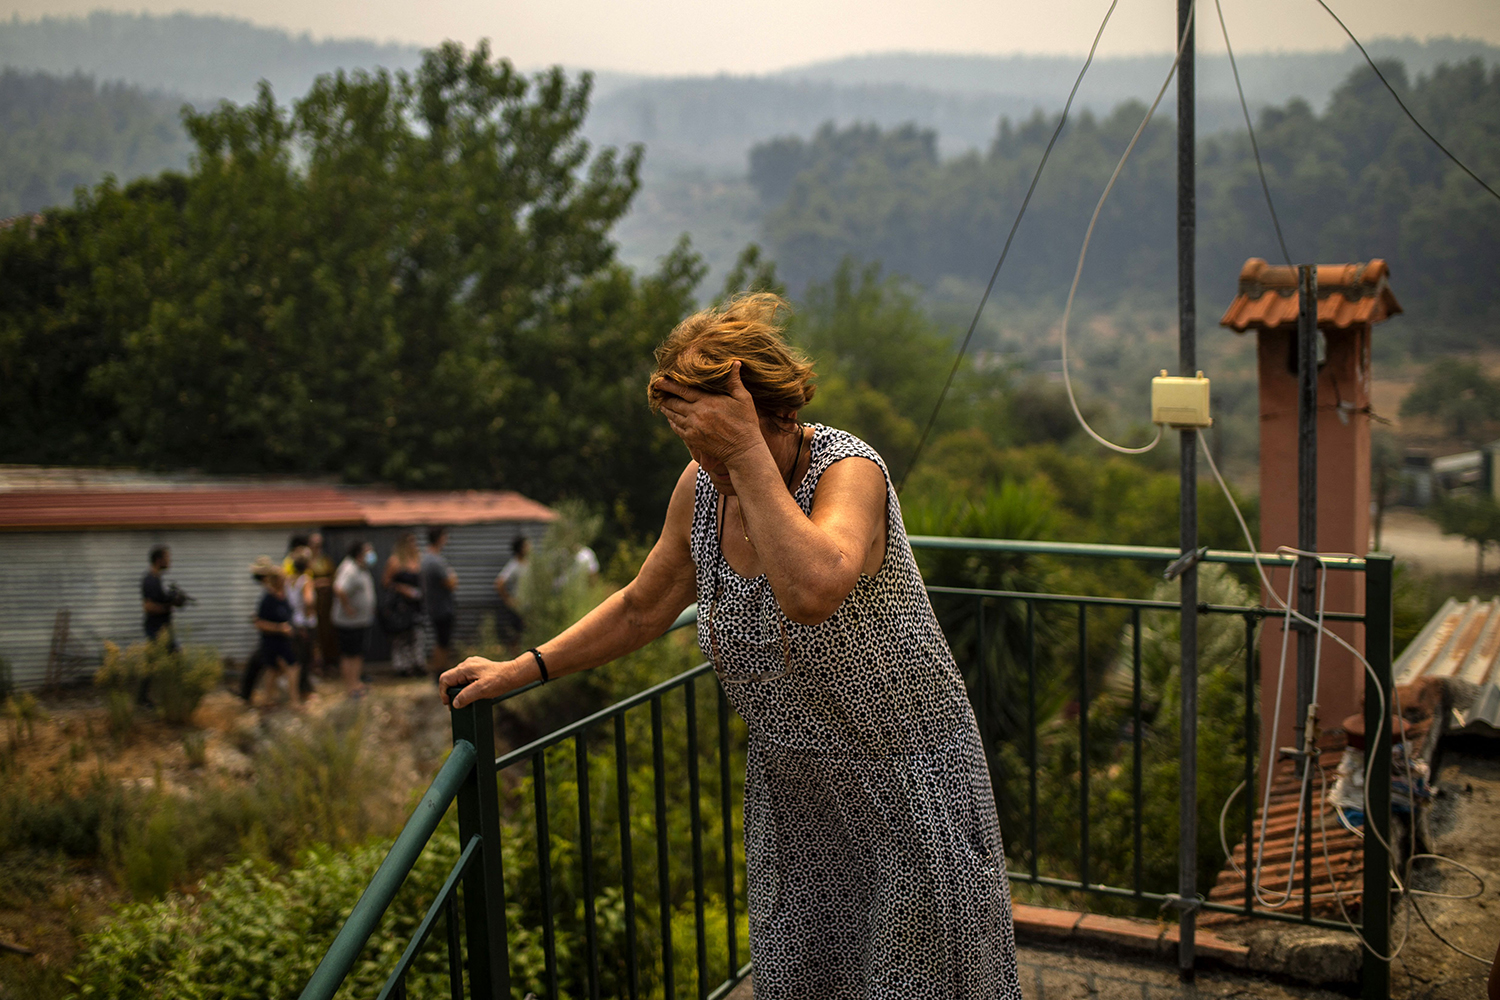 Woman reacts to fire in Greece